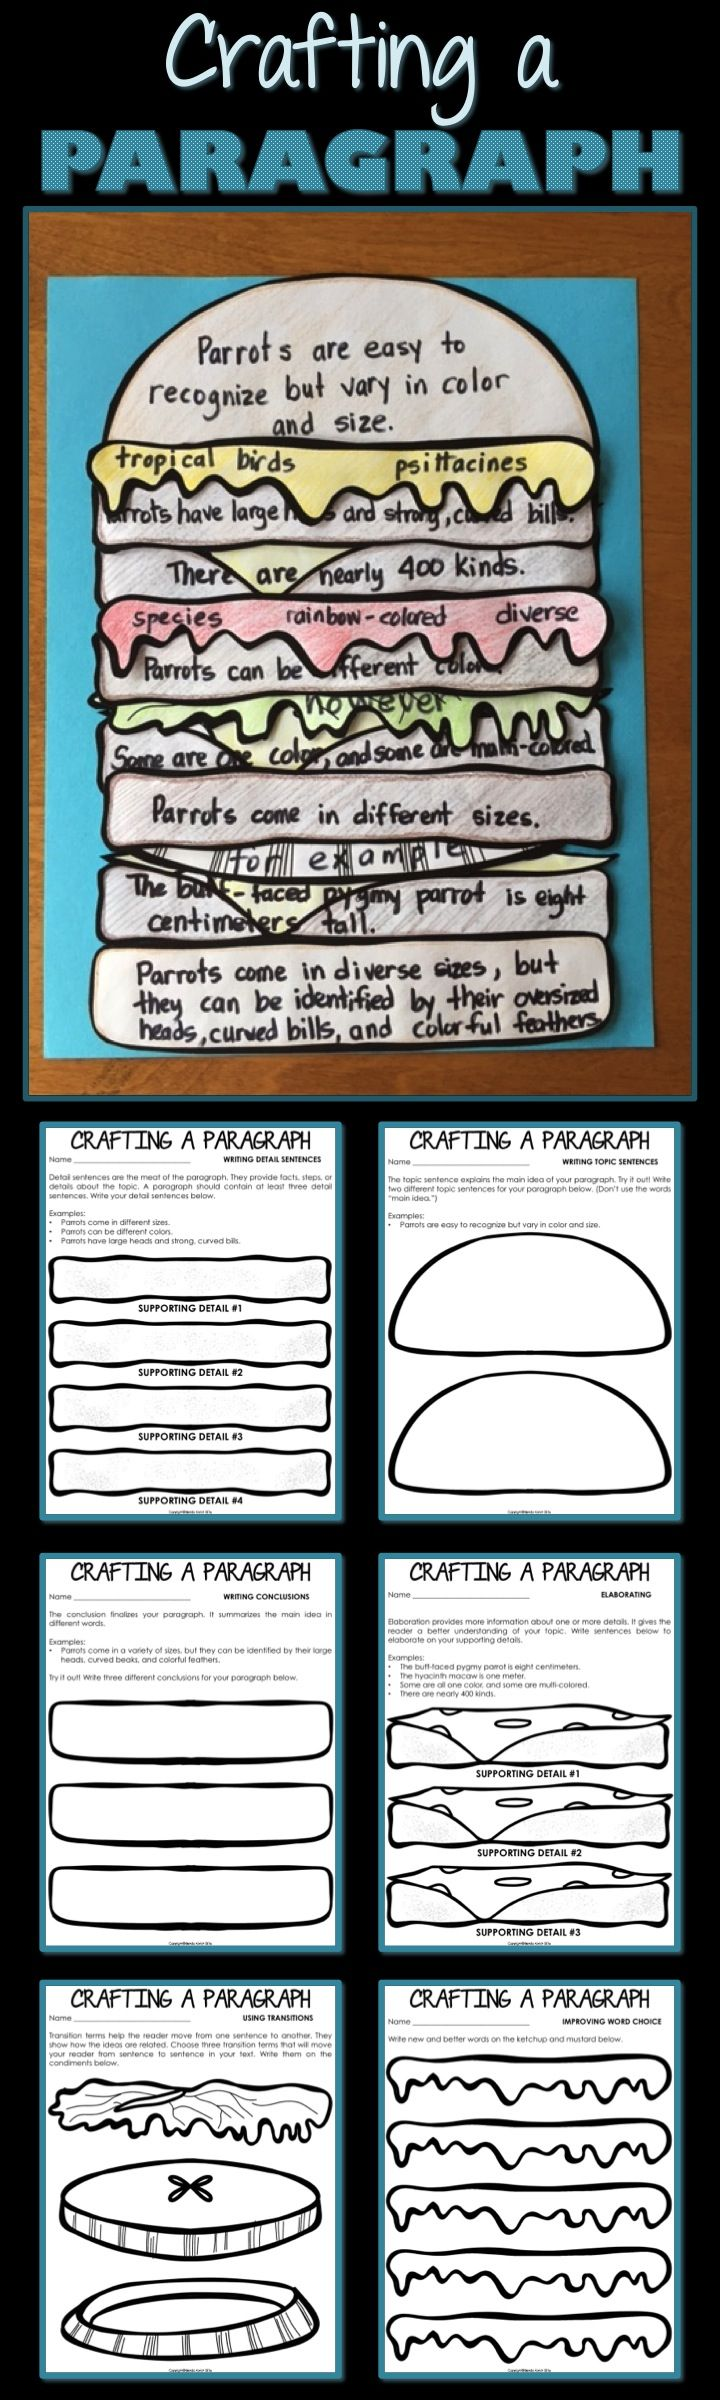 teaching expository writing 3rd grade Find quality lessons, lessonplans, and other resources for third grade expository writing and much more.